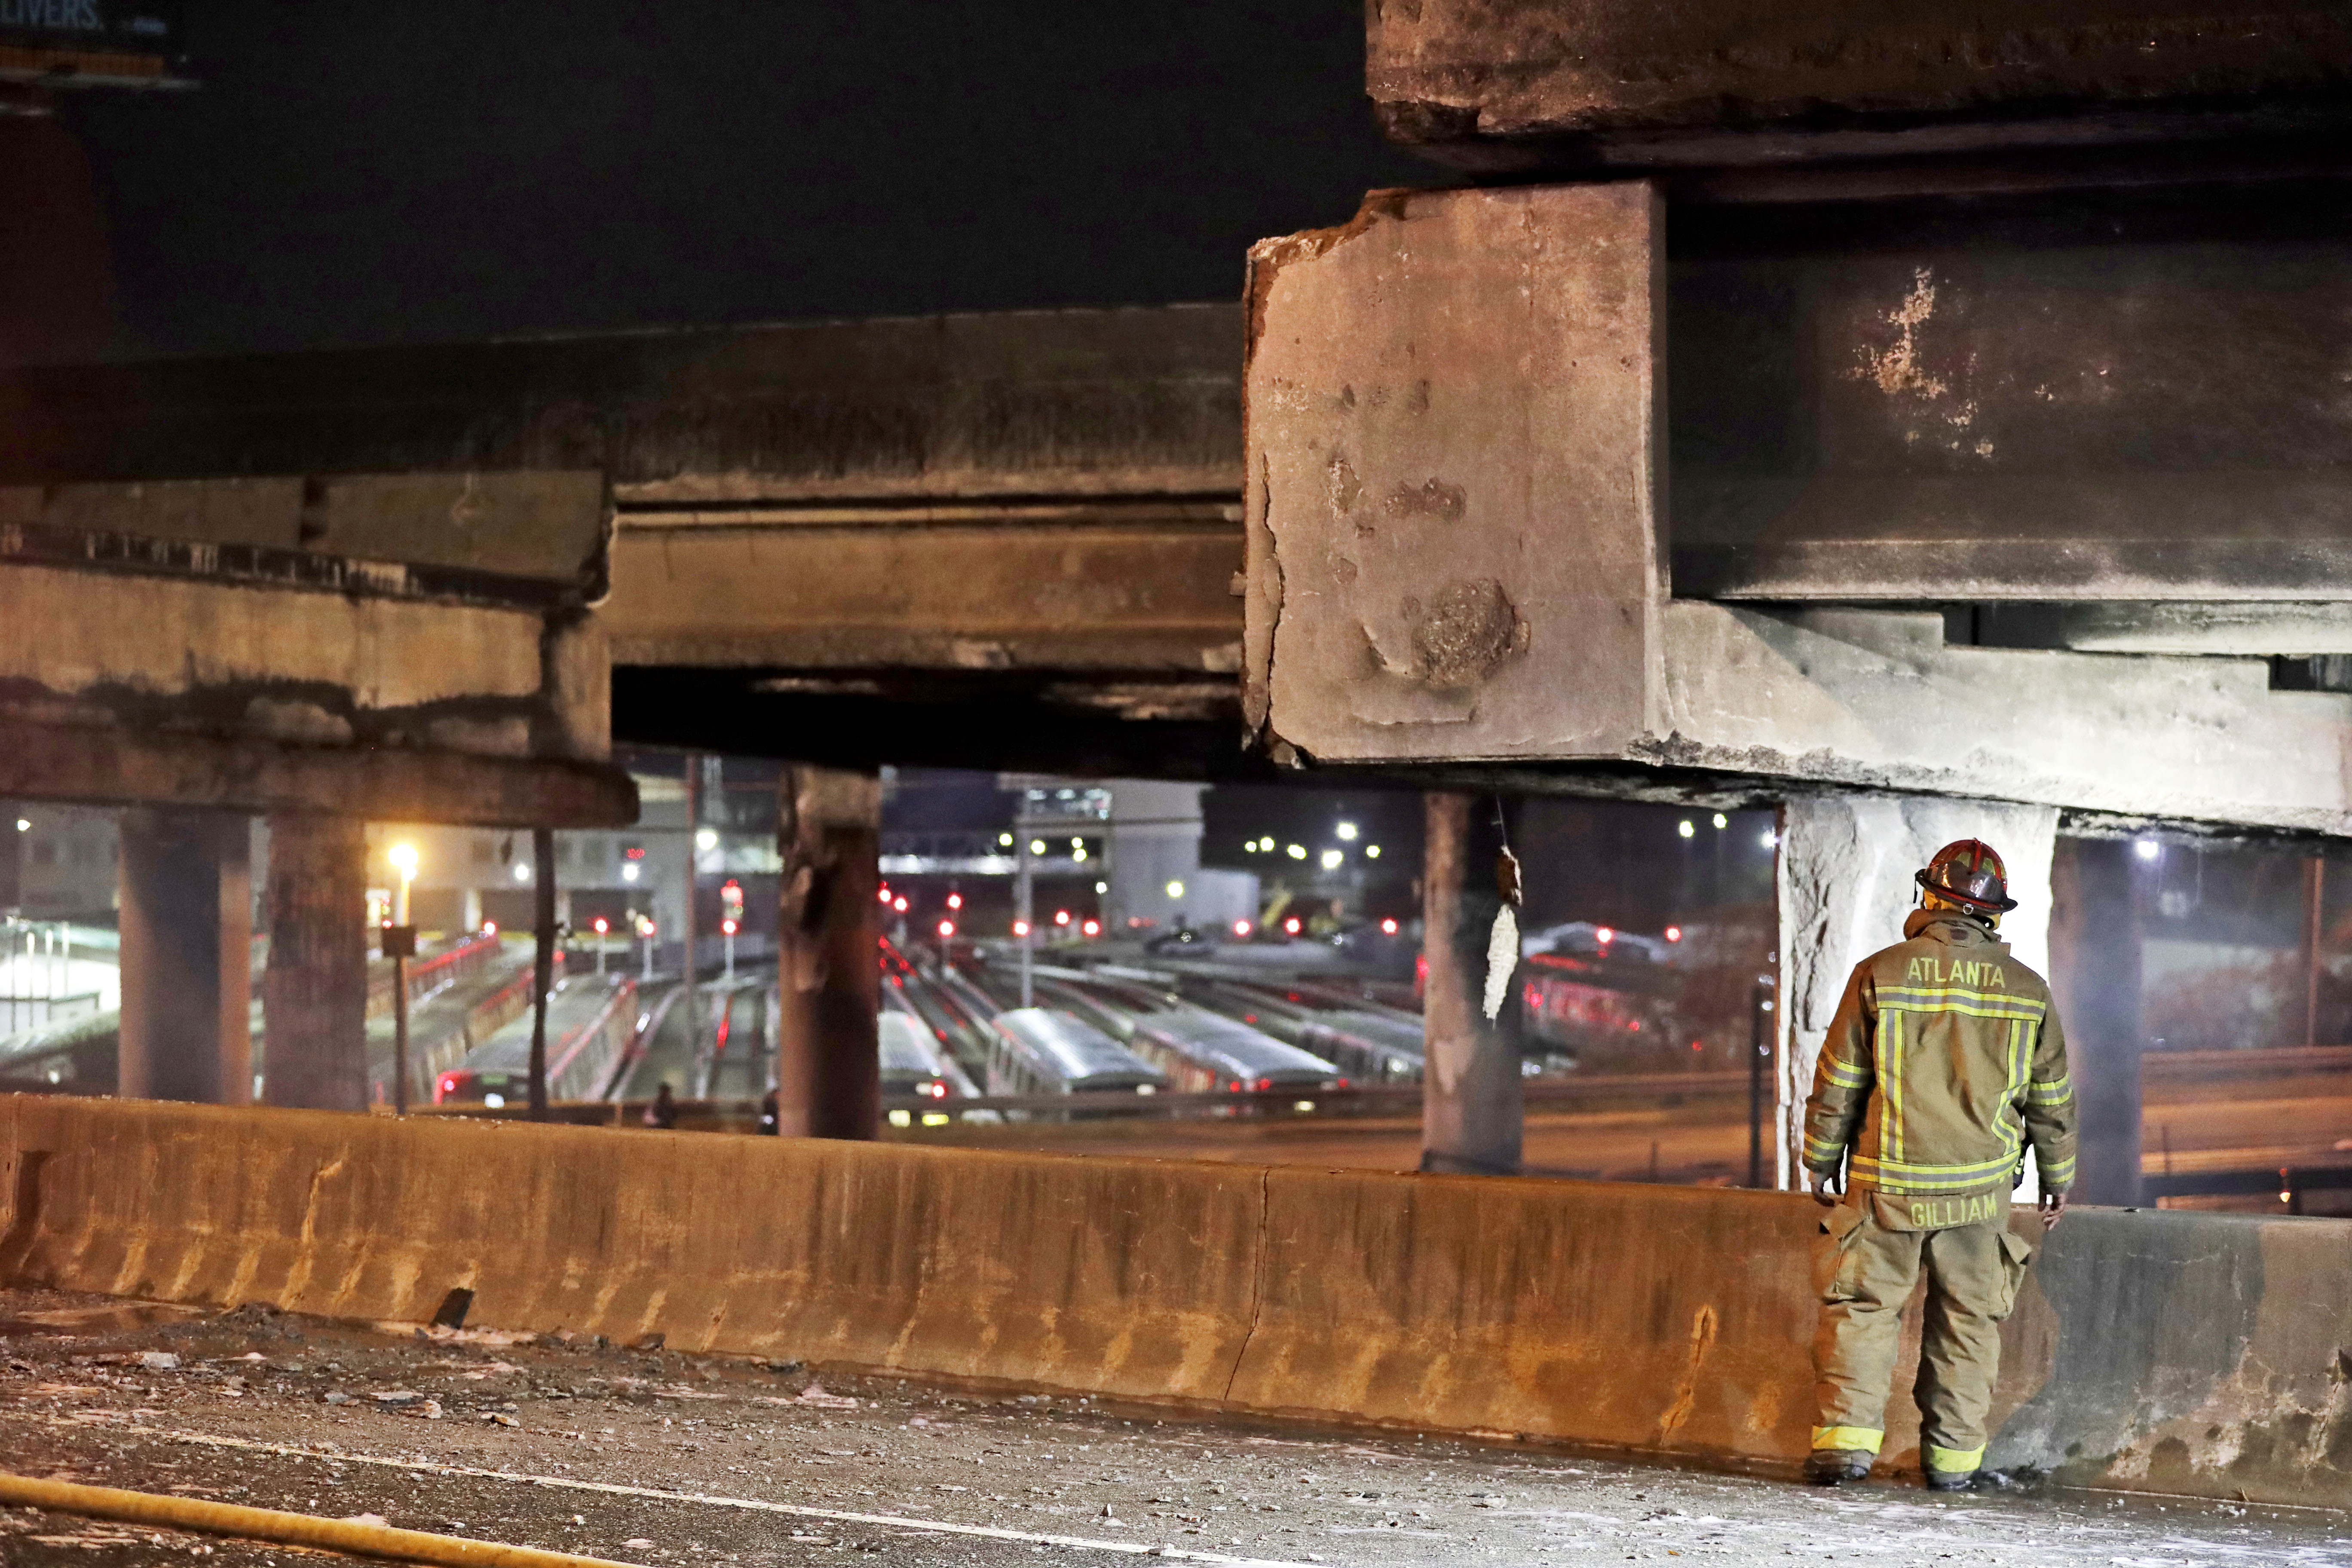 A firefighter surveys the section of an overpass that collapsed from a large fire on Interstate 85 in Atlanta, March 30, 2017.